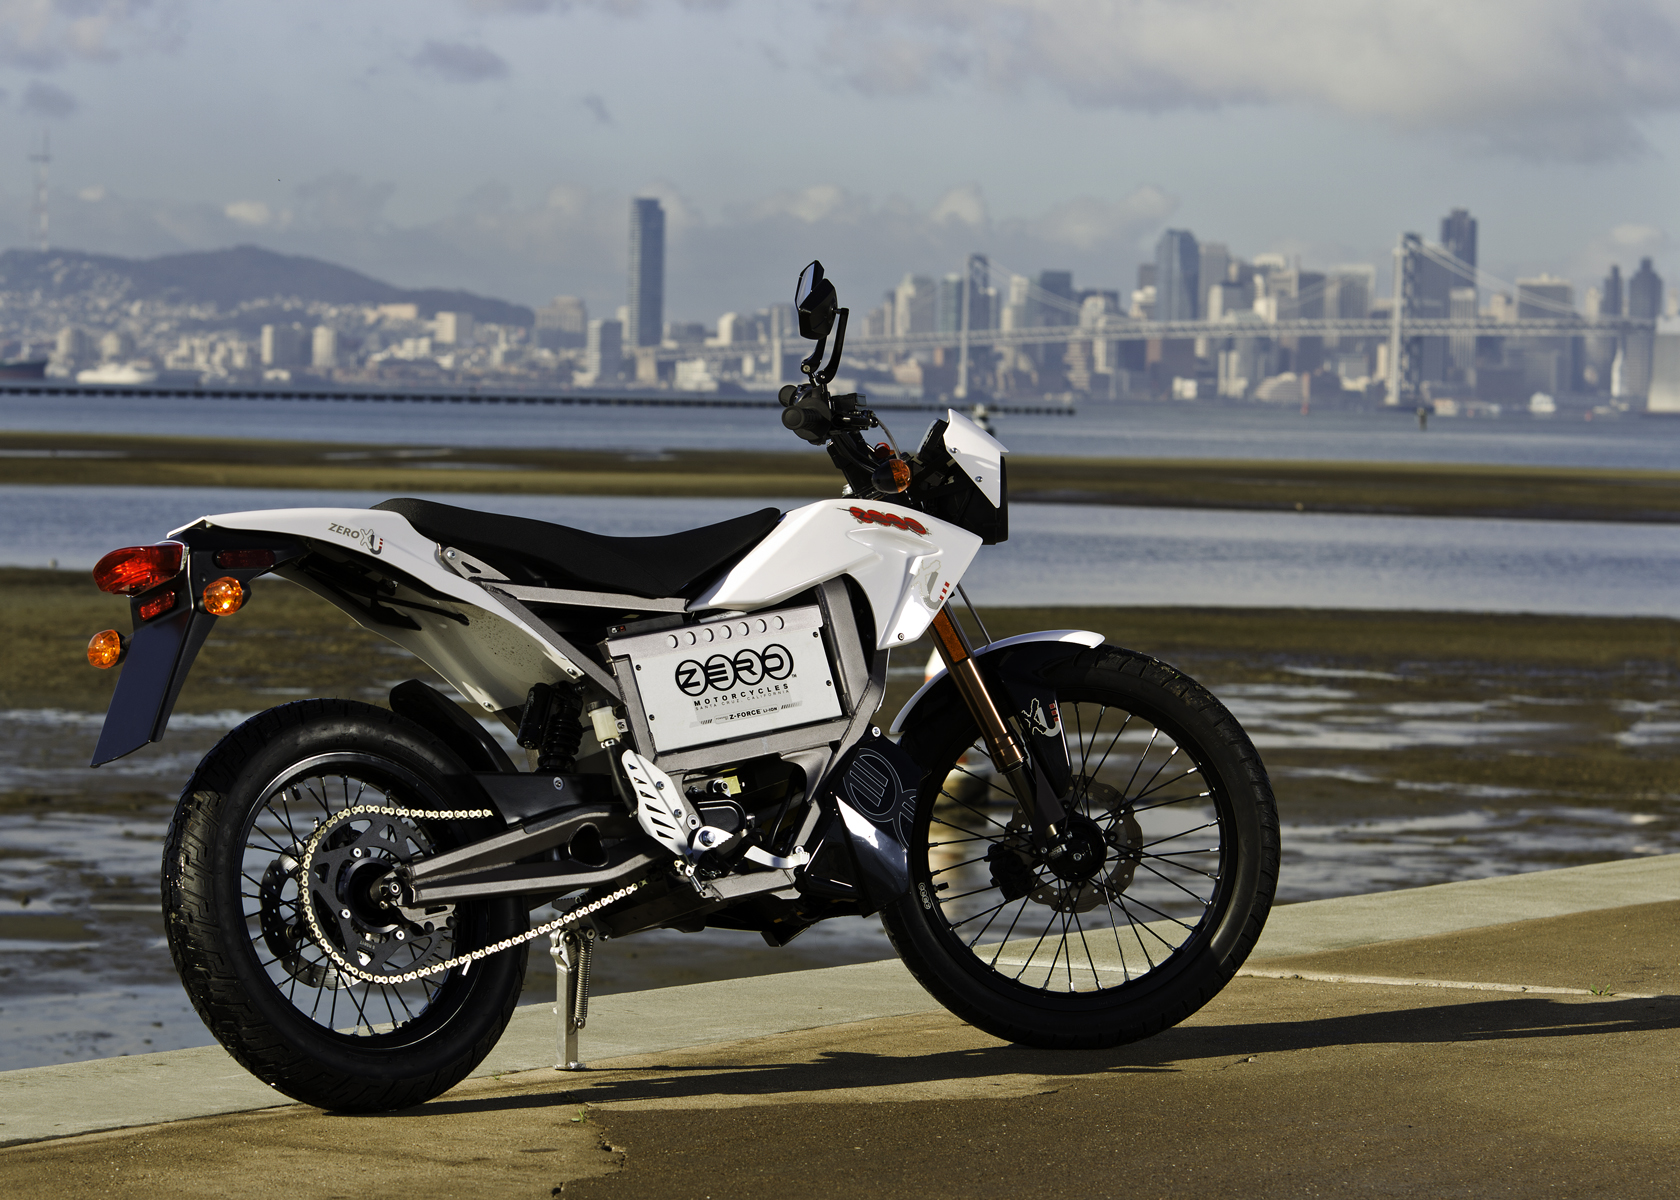 2011 Zero XU Electric Motorcycle: Profile, San Francisco Bay Skyline